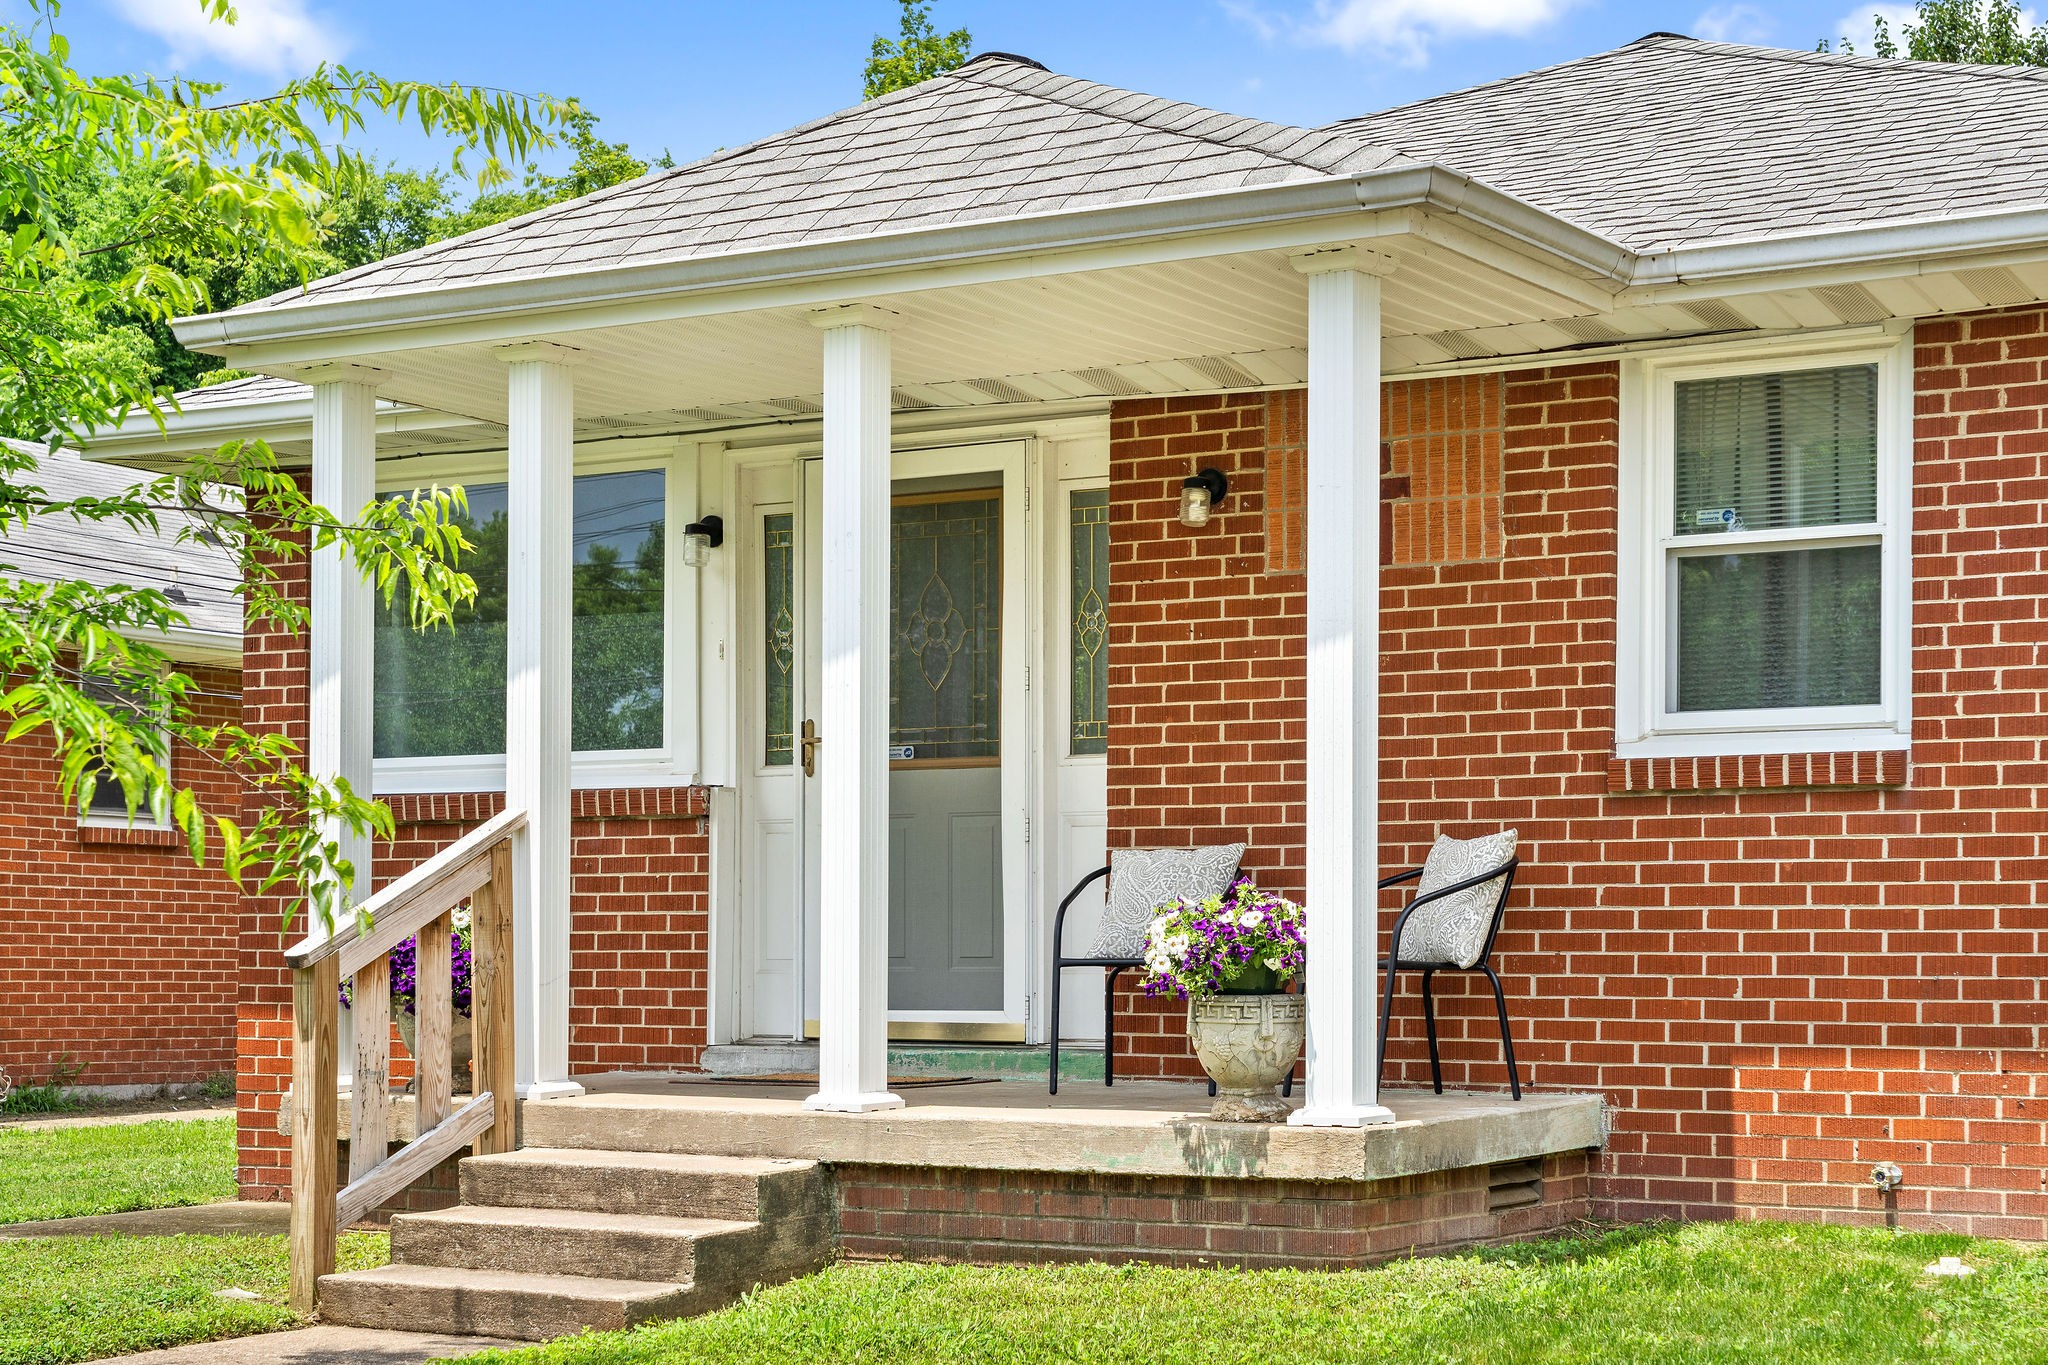 Check Out This All Brick, Ranch Home - Close to  APSU & Downtown - Amazing Expansion Makes a Huge Master Bedroom and Very Large Closet - All Kitchen Appliances Convey - Large Backyard - Perfect to Live In or Great Investment Property